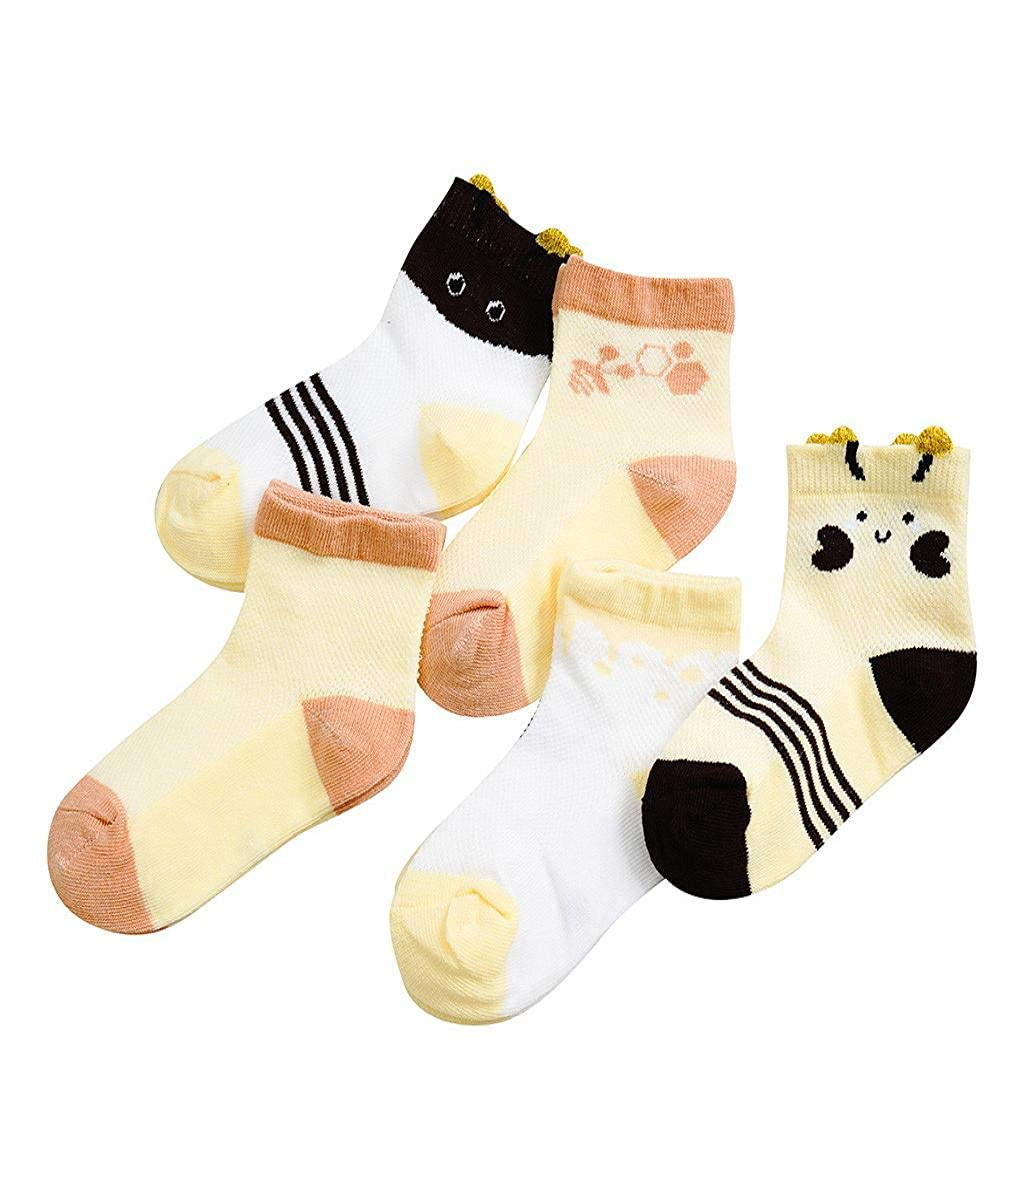 Vertily Childrens Cartoon Mesh Breathable Sweat Socks Short Socks Five Pairs A Pack Kids Infant Baby Boys Girls Breathable Cartoon Animals Anti-Slip 5 Pairs Socks